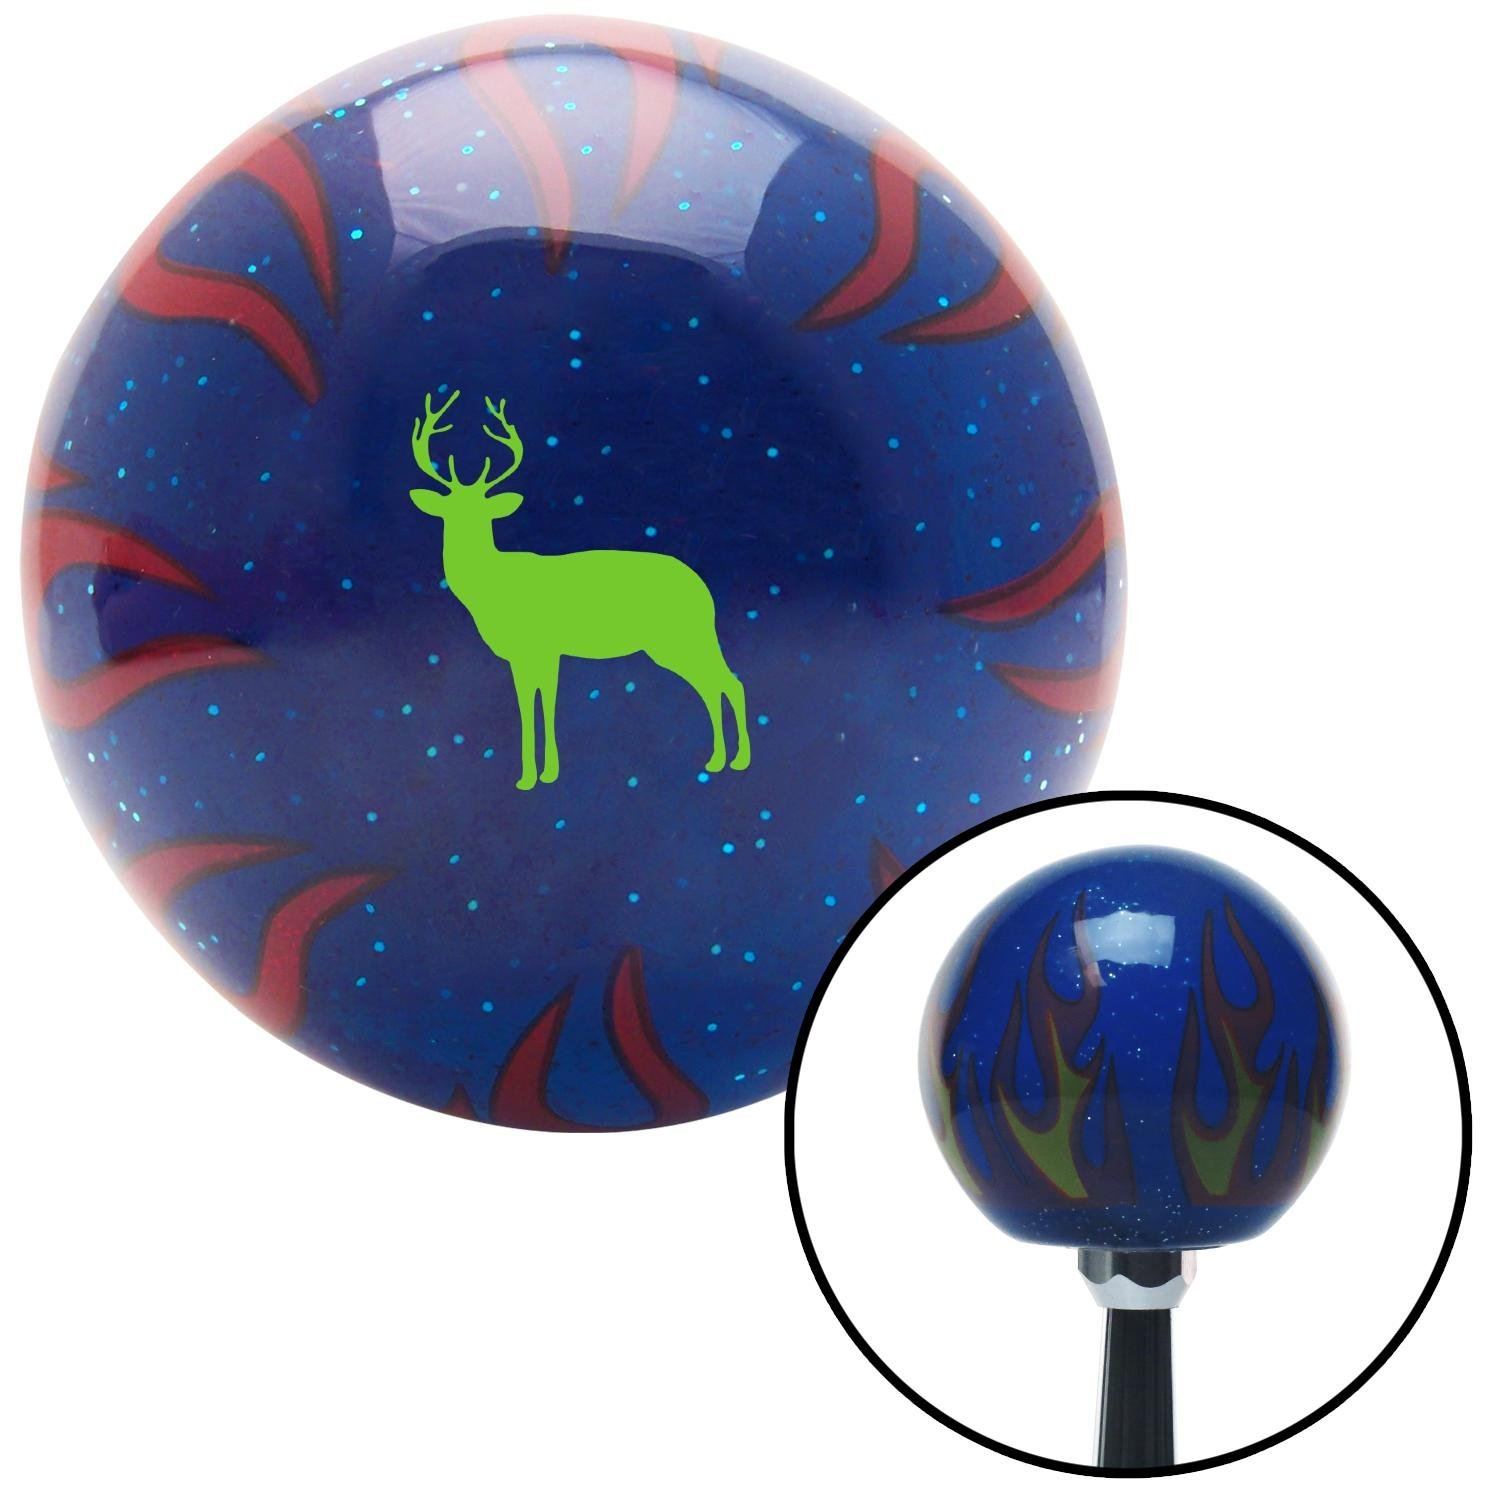 American Shifter 297605 Shift Knob Green Deer Silhouette Blue Flame Metal Flake with M16 x 1.5 Insert